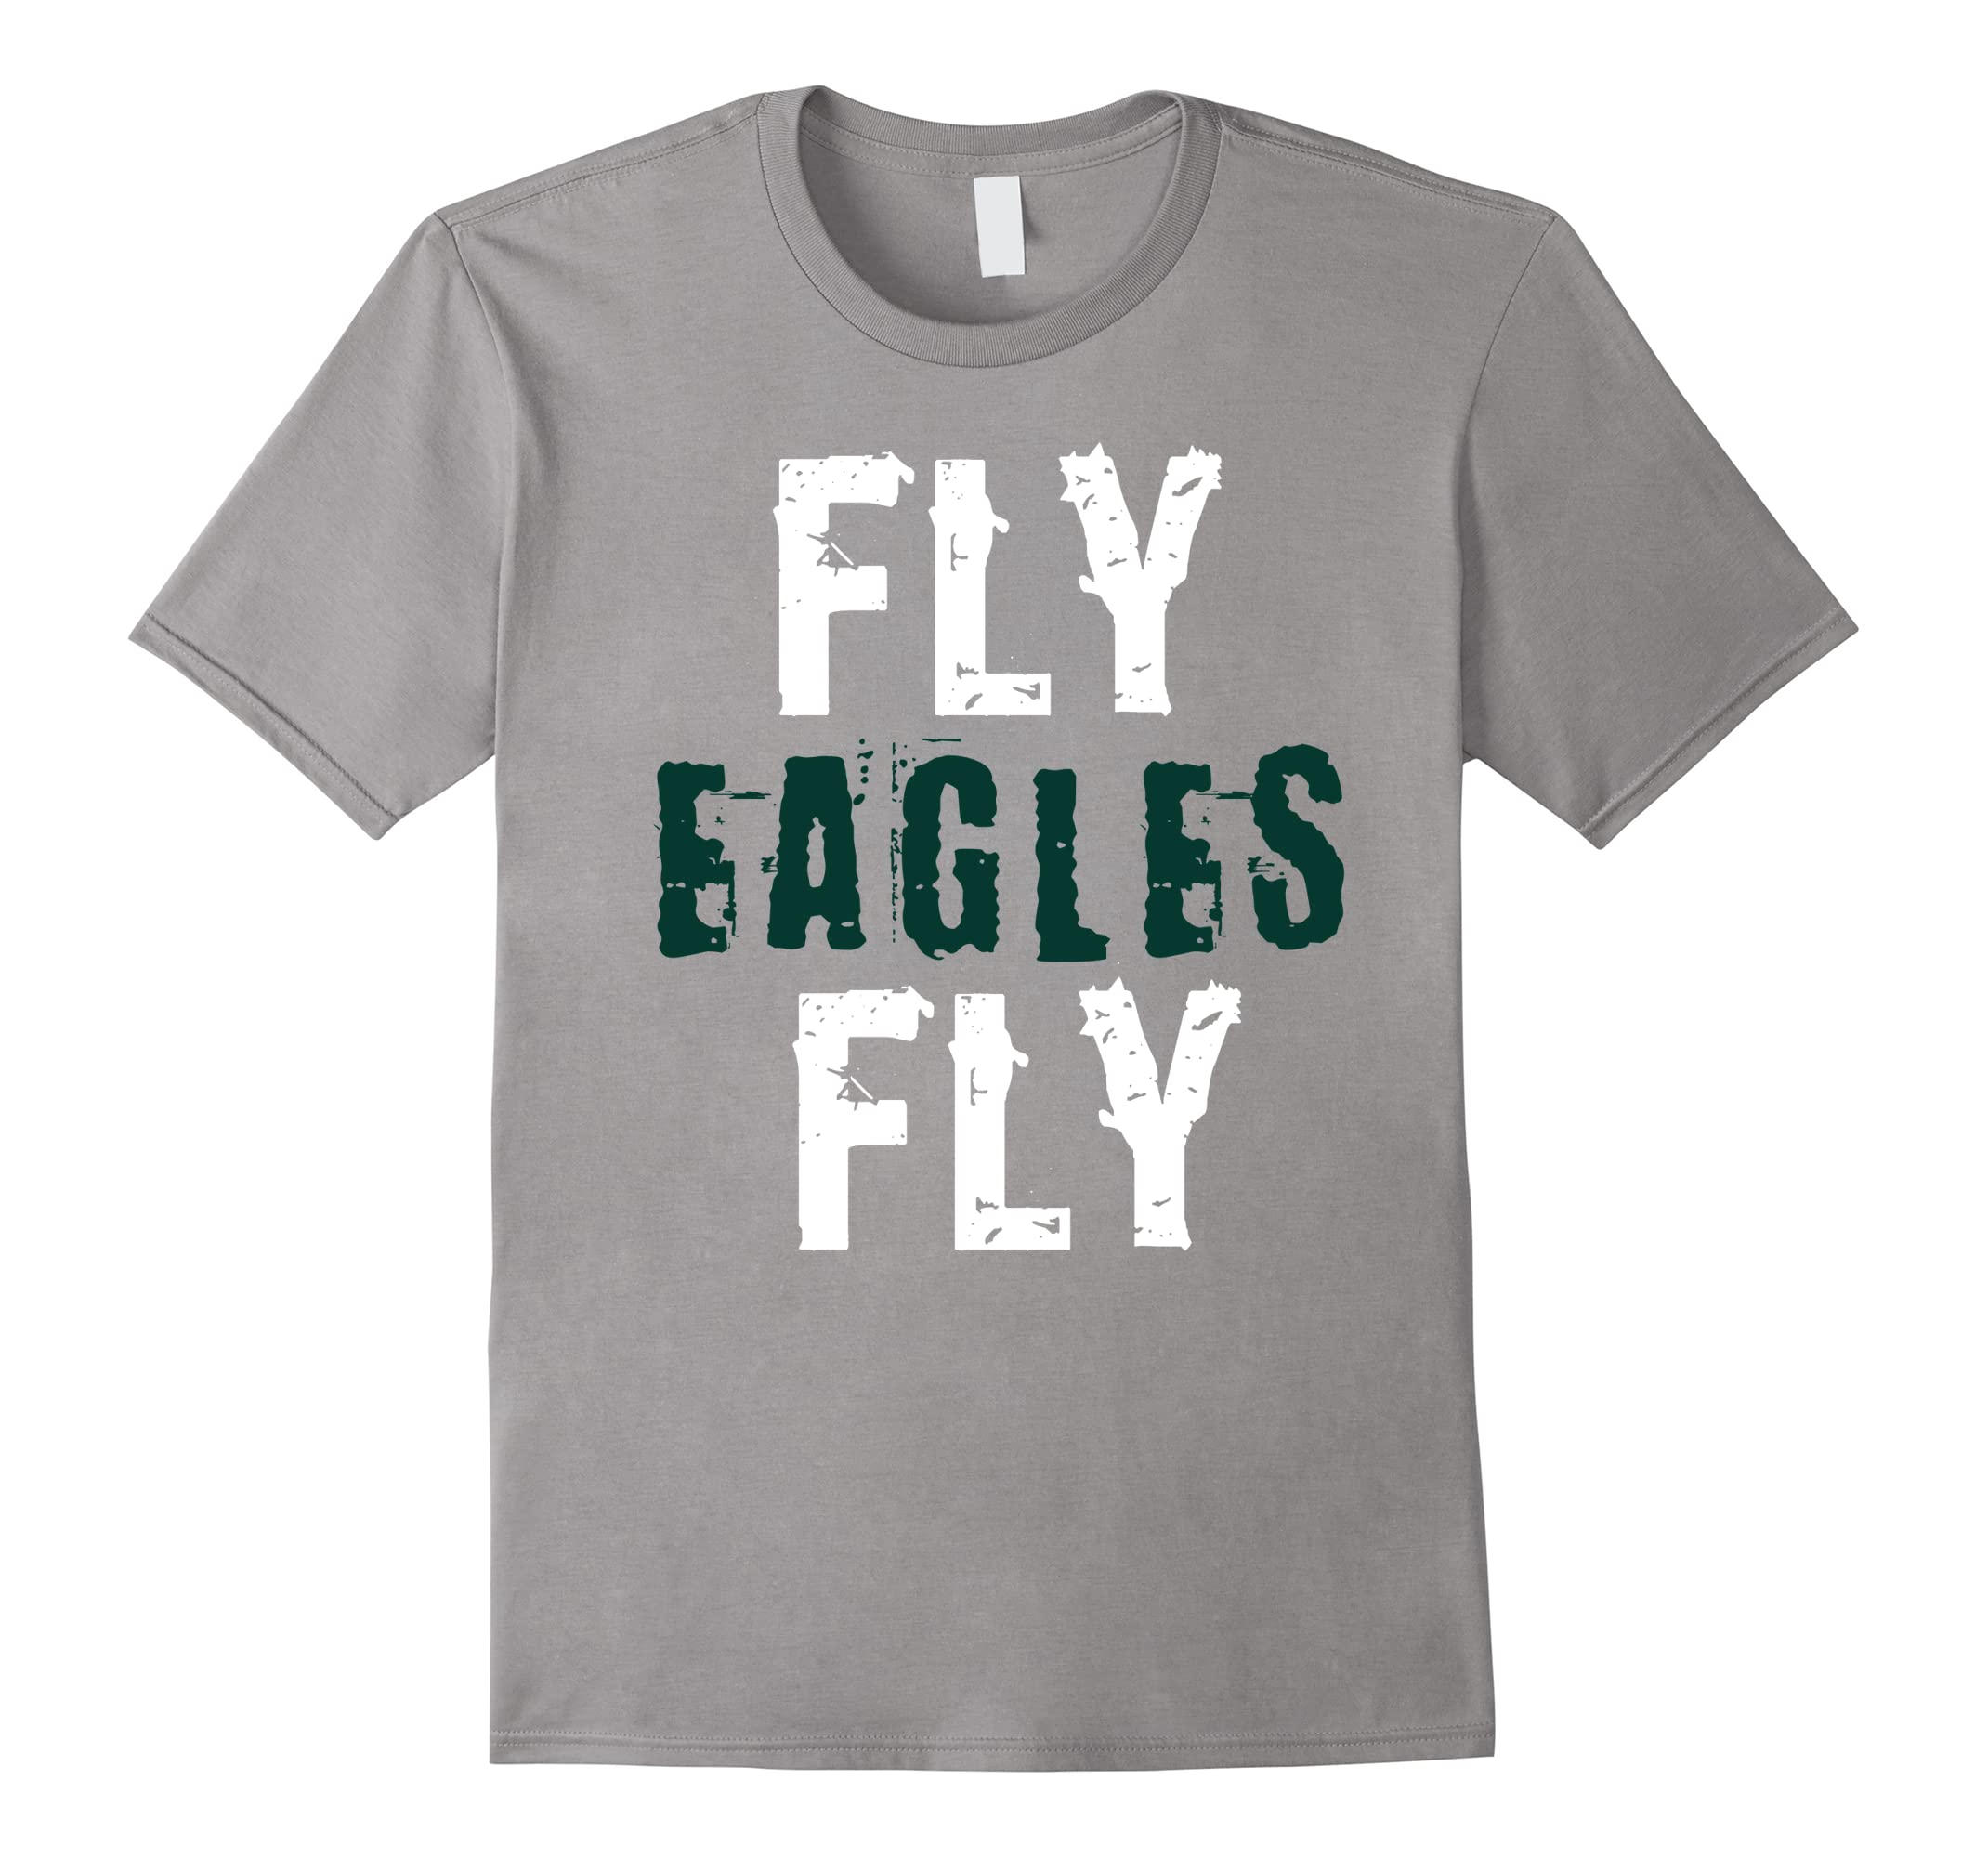 Eagles ~ Fly Eagles Fly ~ Vintage ~ Men, Women, Child-ah my shirt one gift